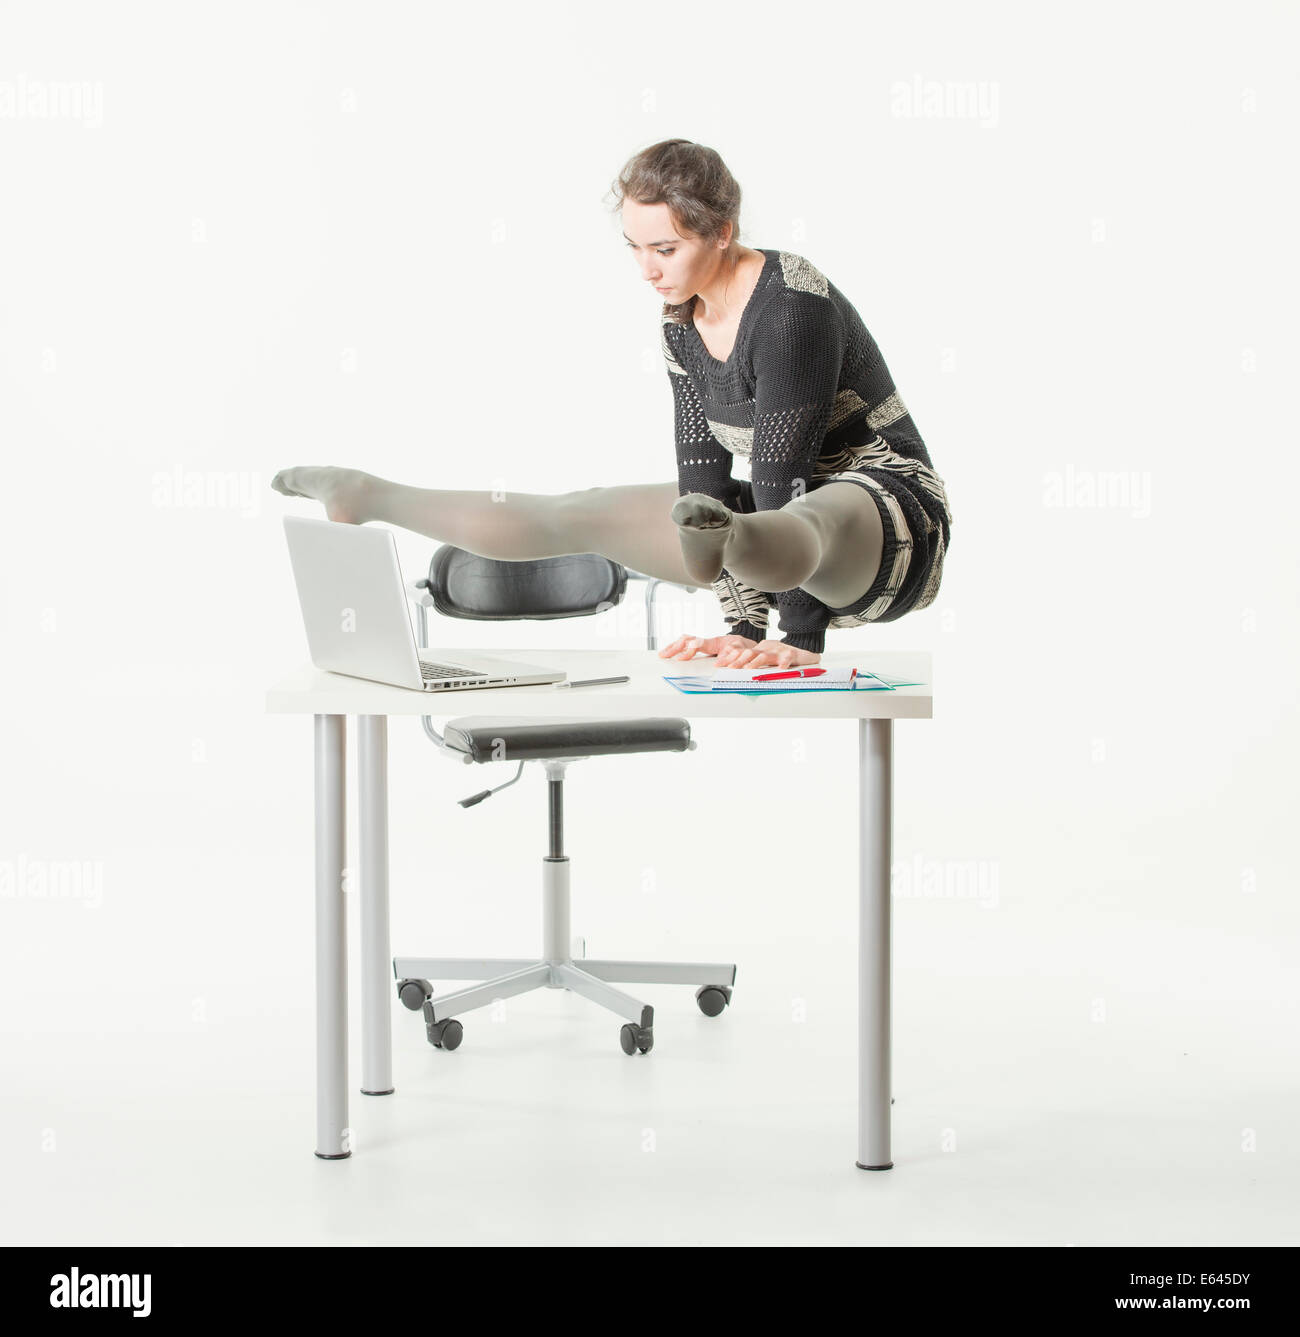 Young woman balancing on her hands on an office desk while looking at her computer Stock Photo